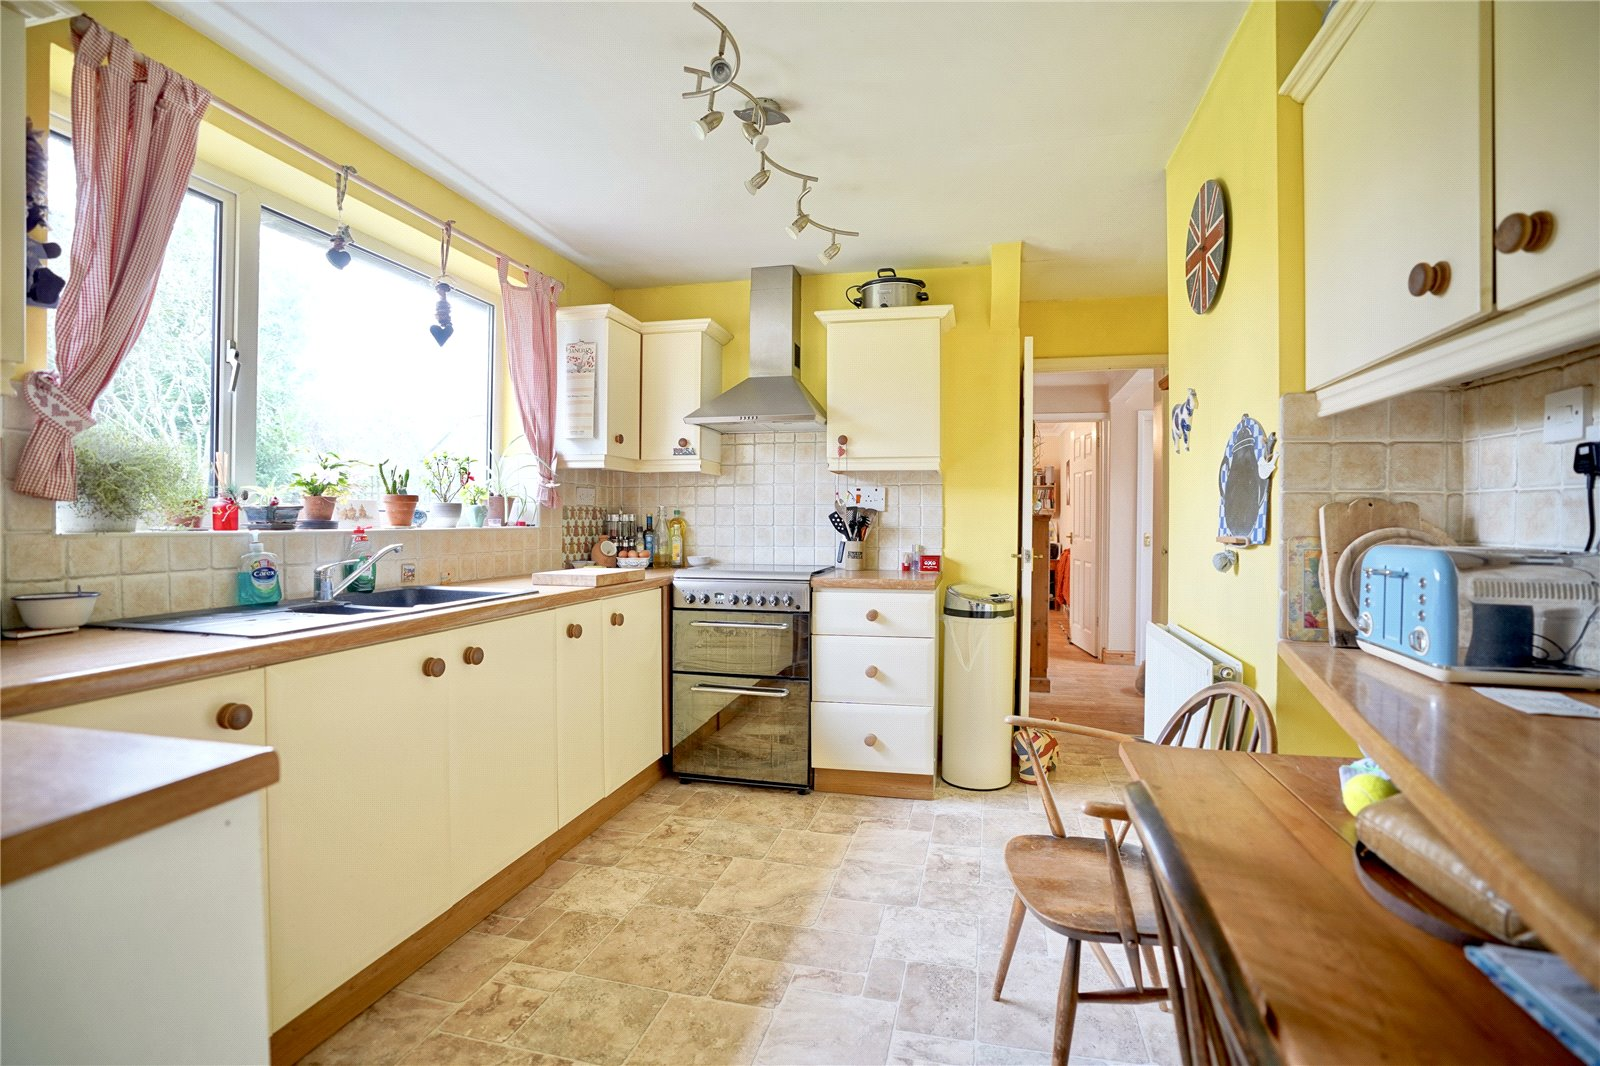 3 bed house for sale in Hemingford Grey, PE28 9BS 4